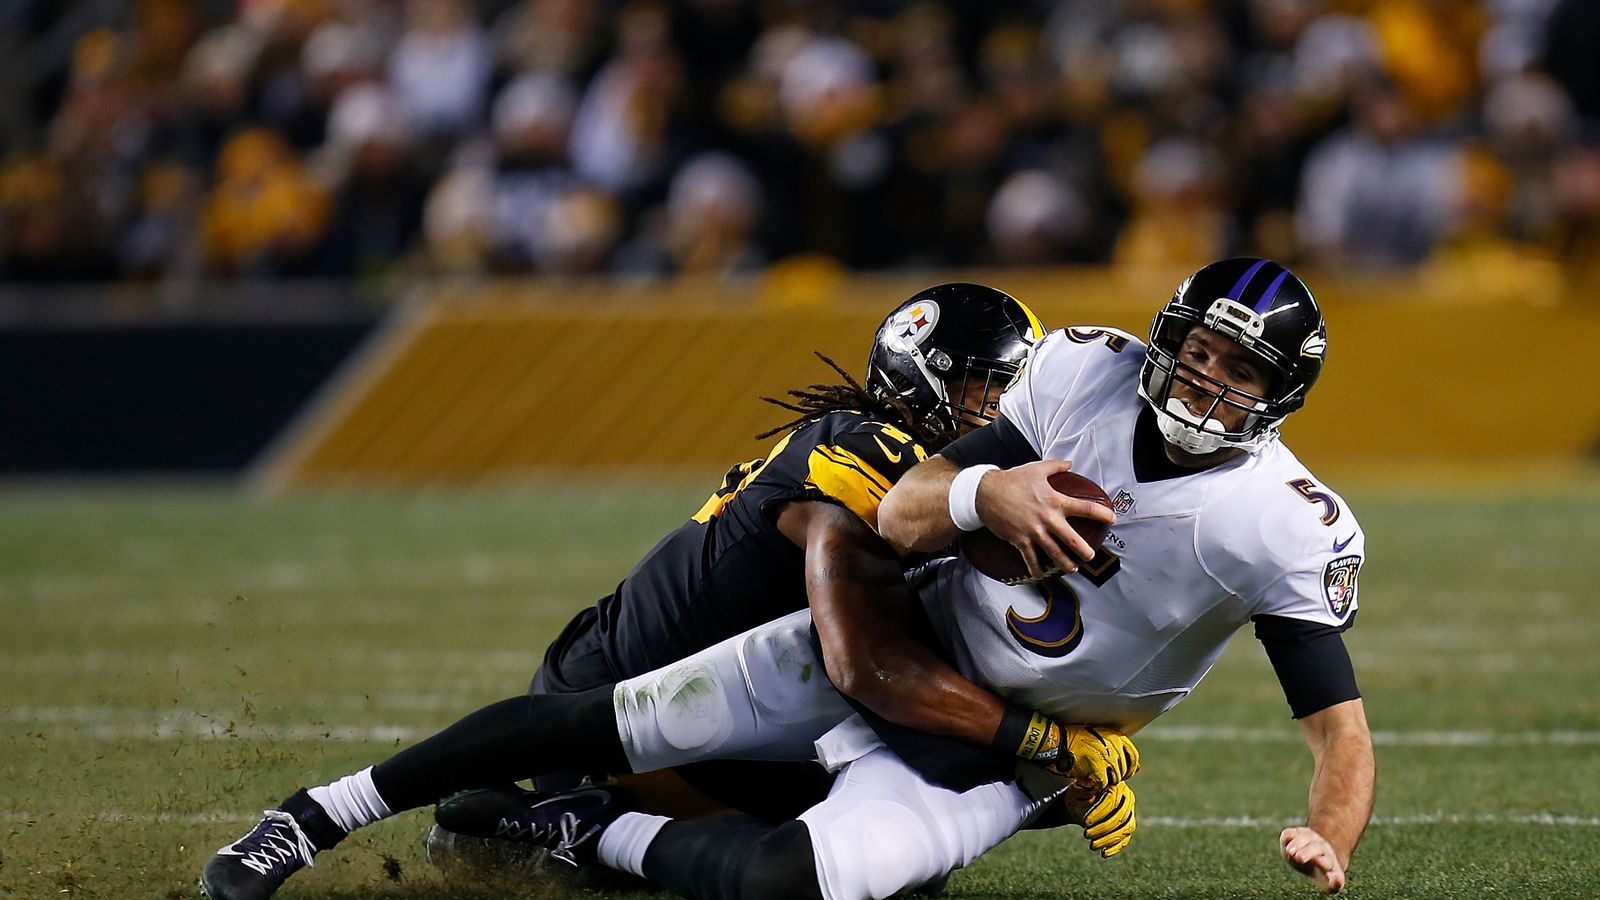 Ravens Vs Steelers 2016 Final Score And Highlights From